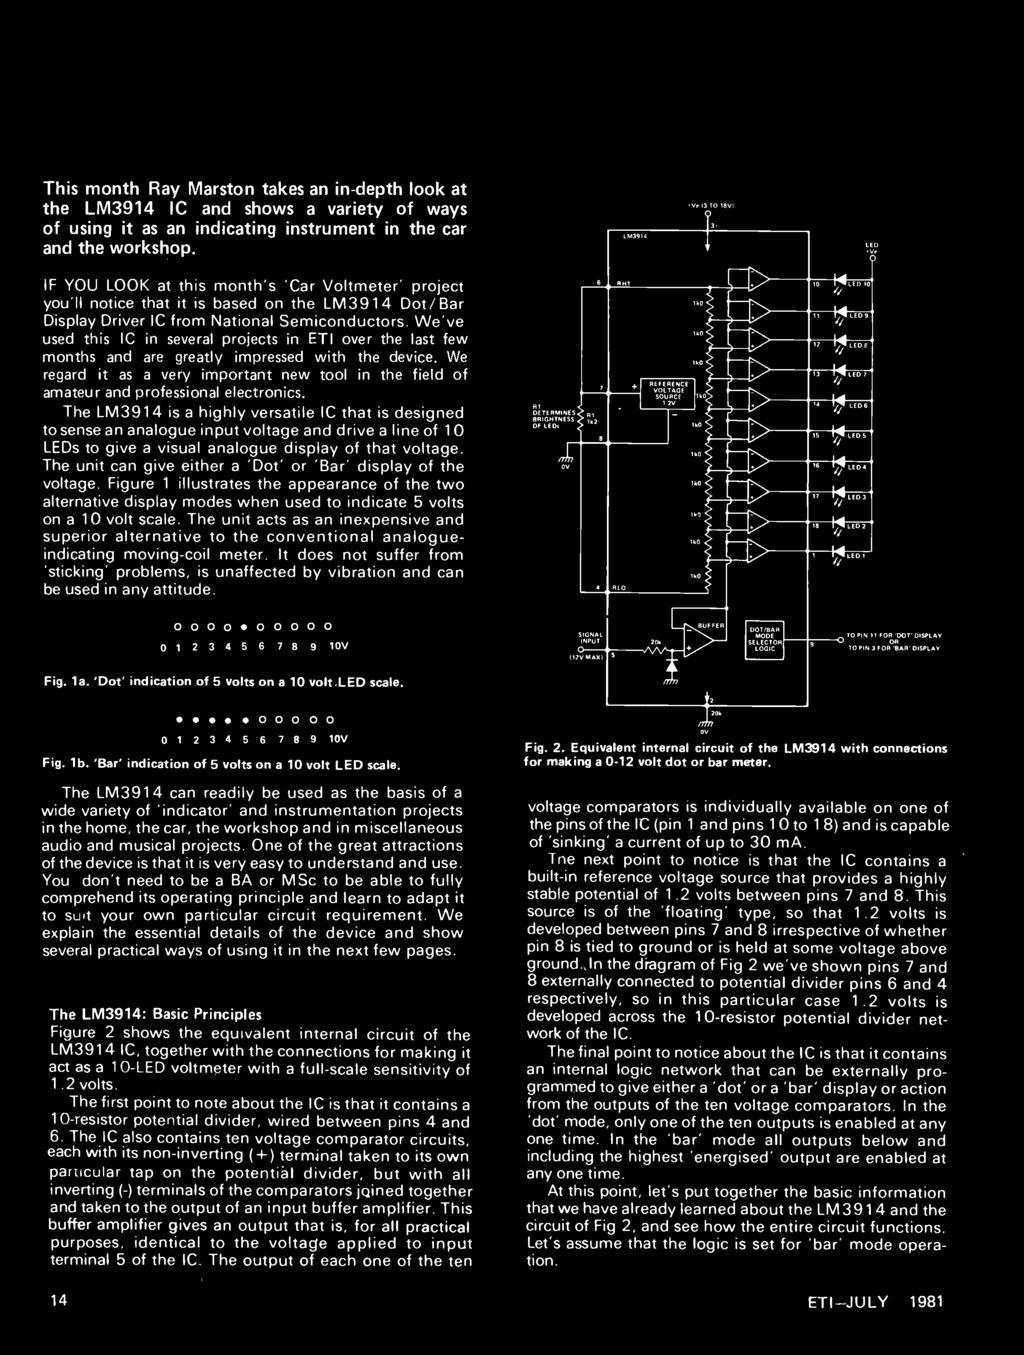 Internationa July 1981 124 Pdf Basic Circuit For Lm3914 We Explain The Essential Details Of Device And Show Several Practical Ways Using It 14 Circuits